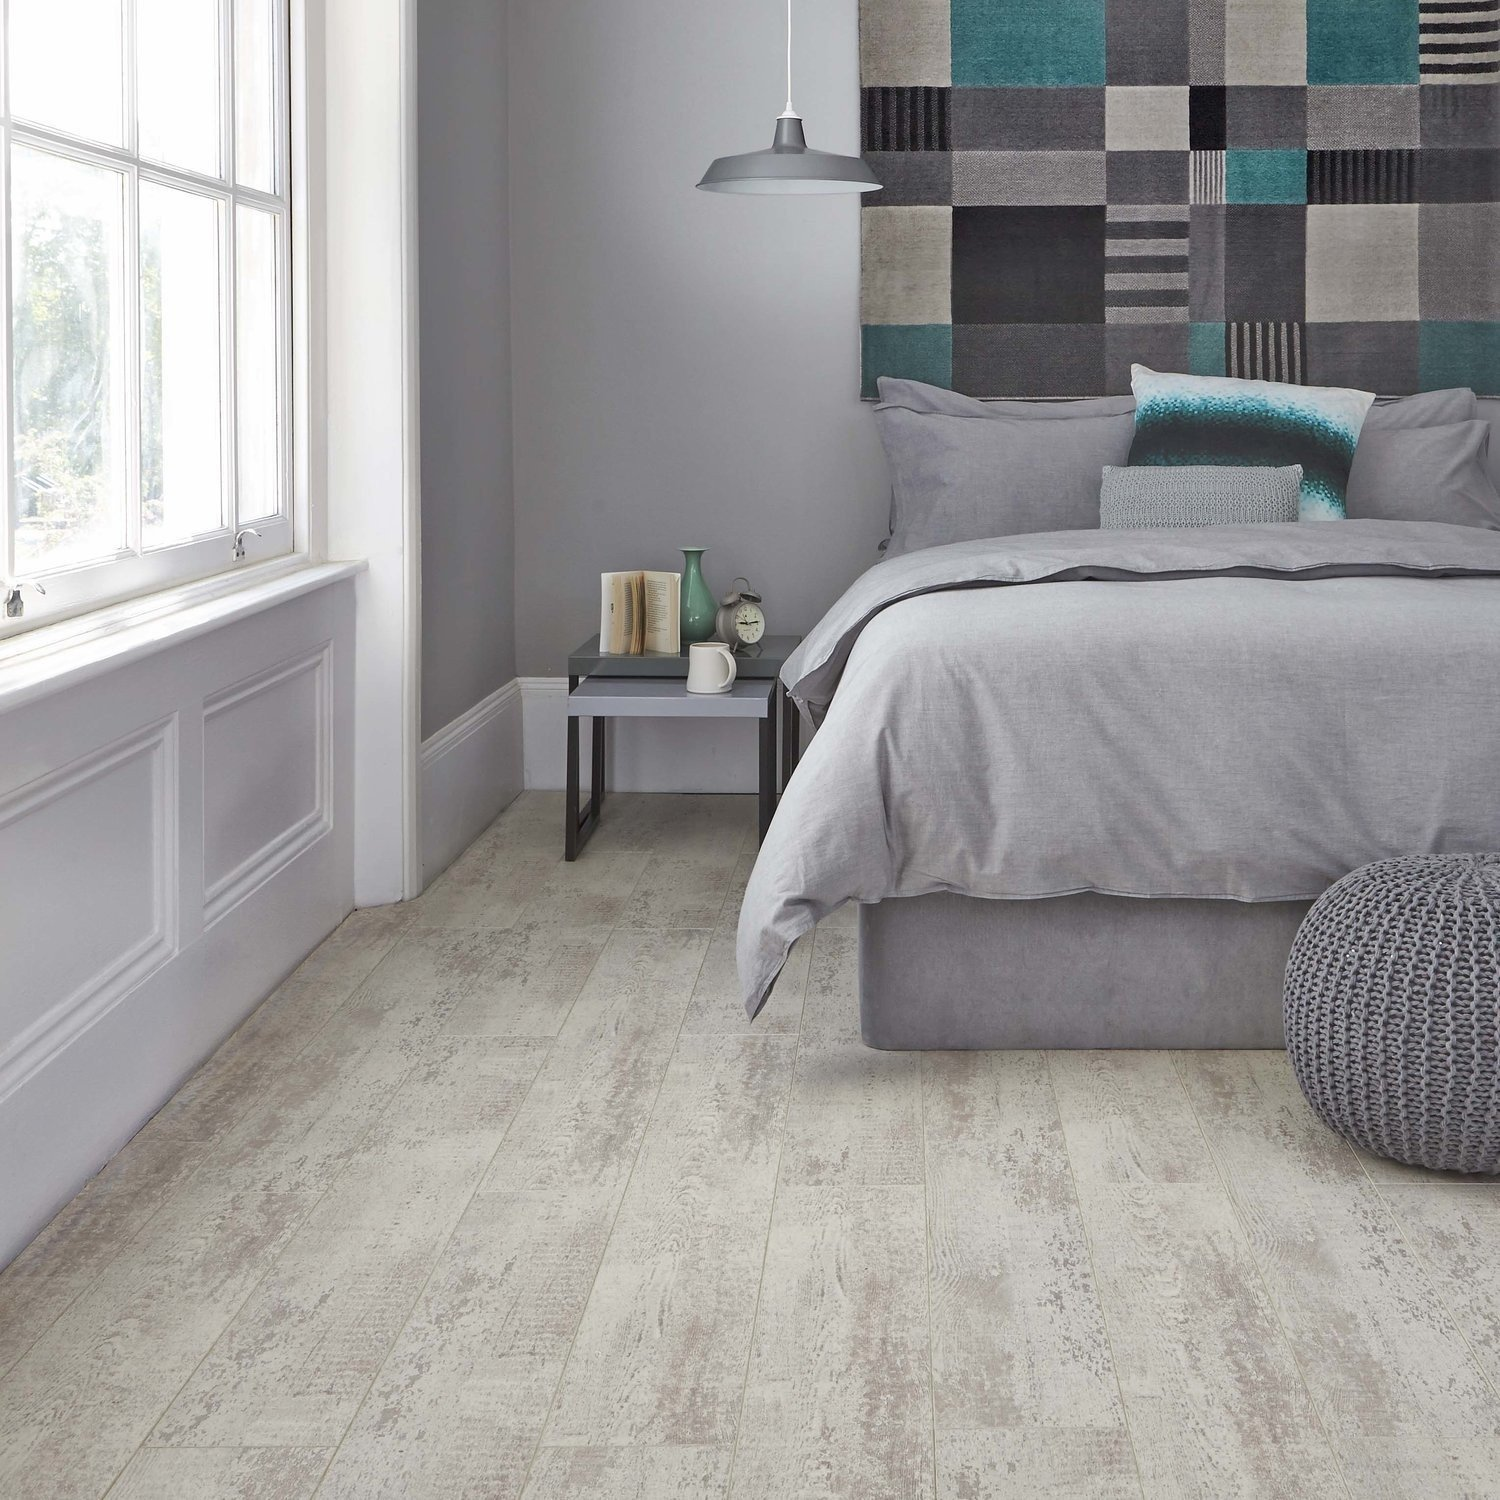 15 Stylish and Beautiful Bedroom Flooring Ideas - Home Loof